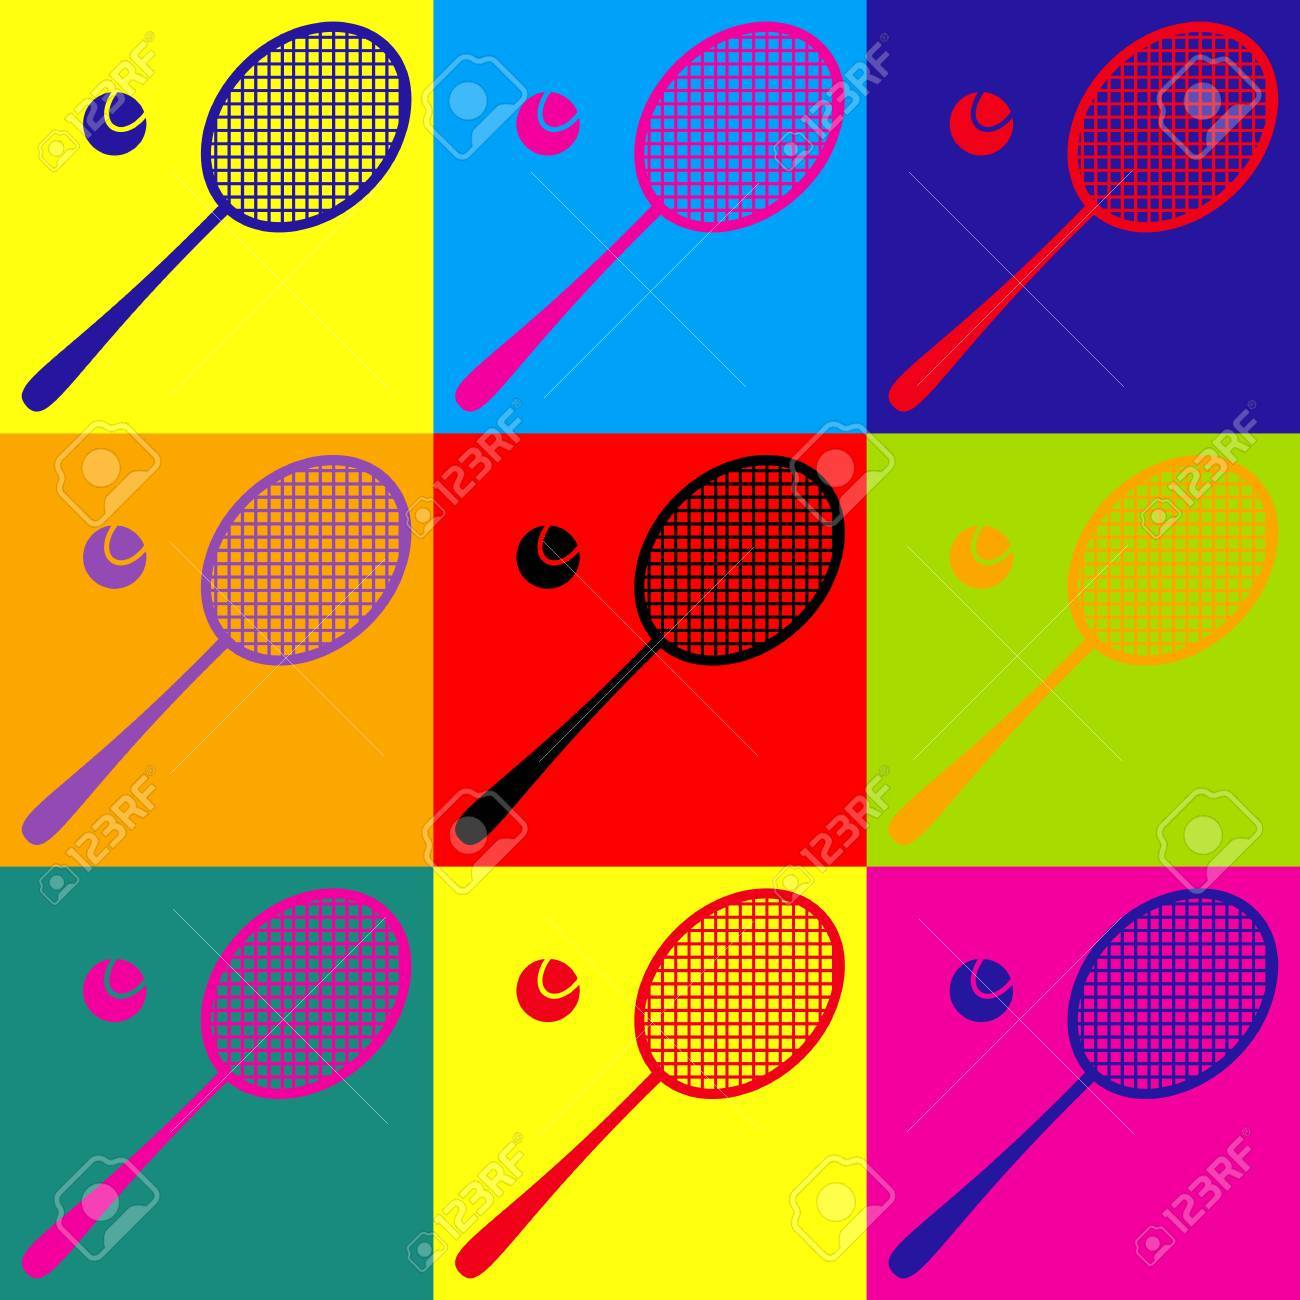 Tennis Racquet Icon Pop Art Style Colorful Icons Set Royalty Free Cliparts Vectors And Stock Illustration Image 56668888